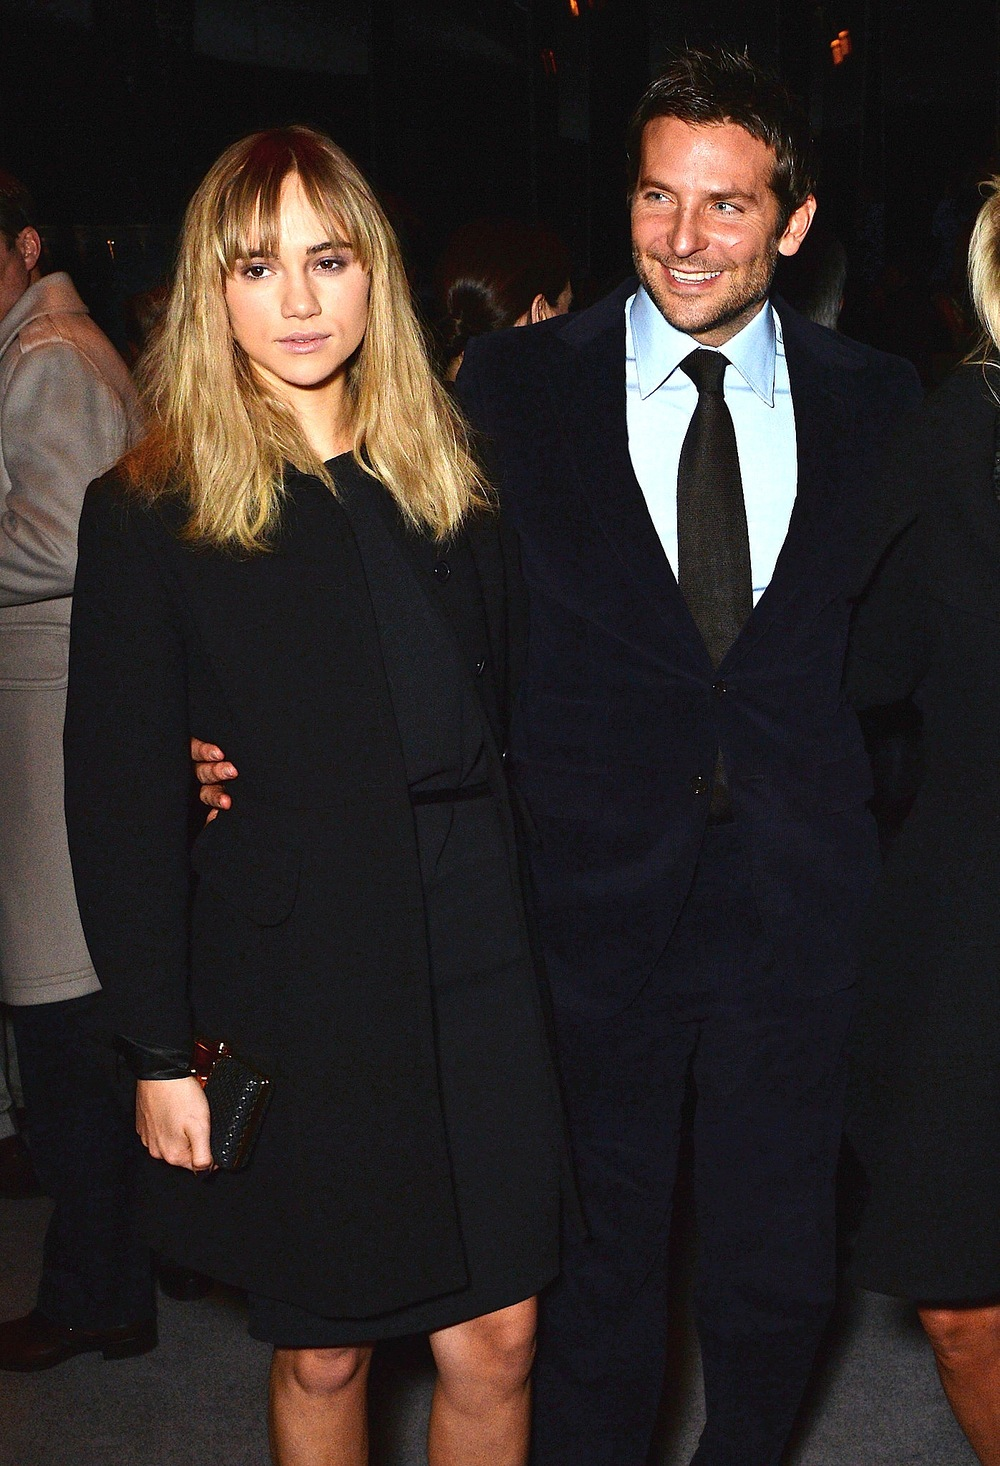 Suki-Waterhouse-Bradley-Cooper-Tom-Ford.jpg